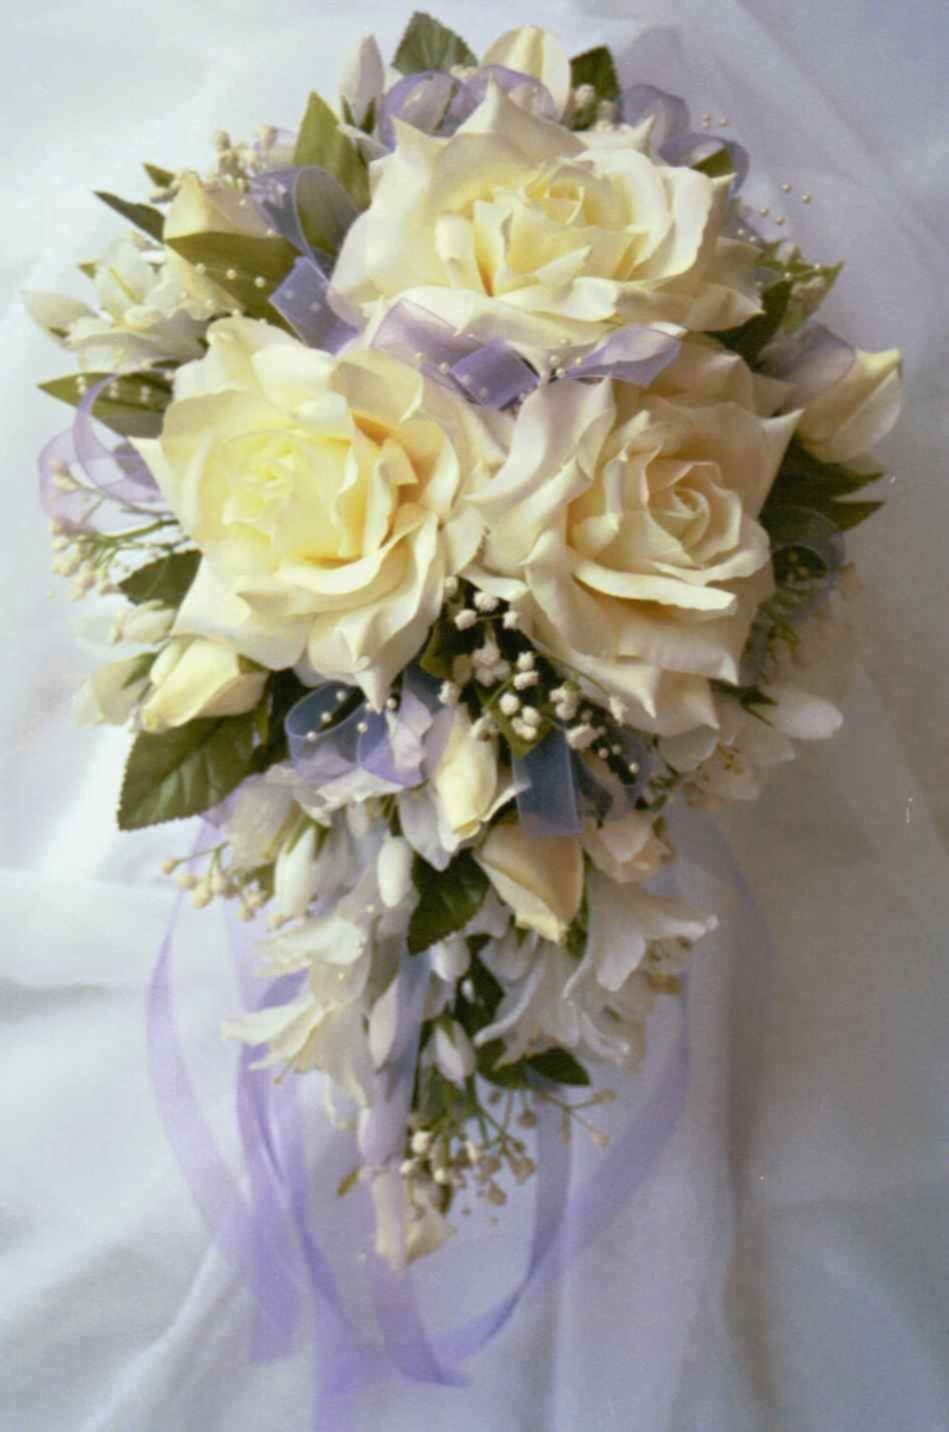 About marriage marriage flower bouquet 2013 wedding for Best flowers for wedding bouquet